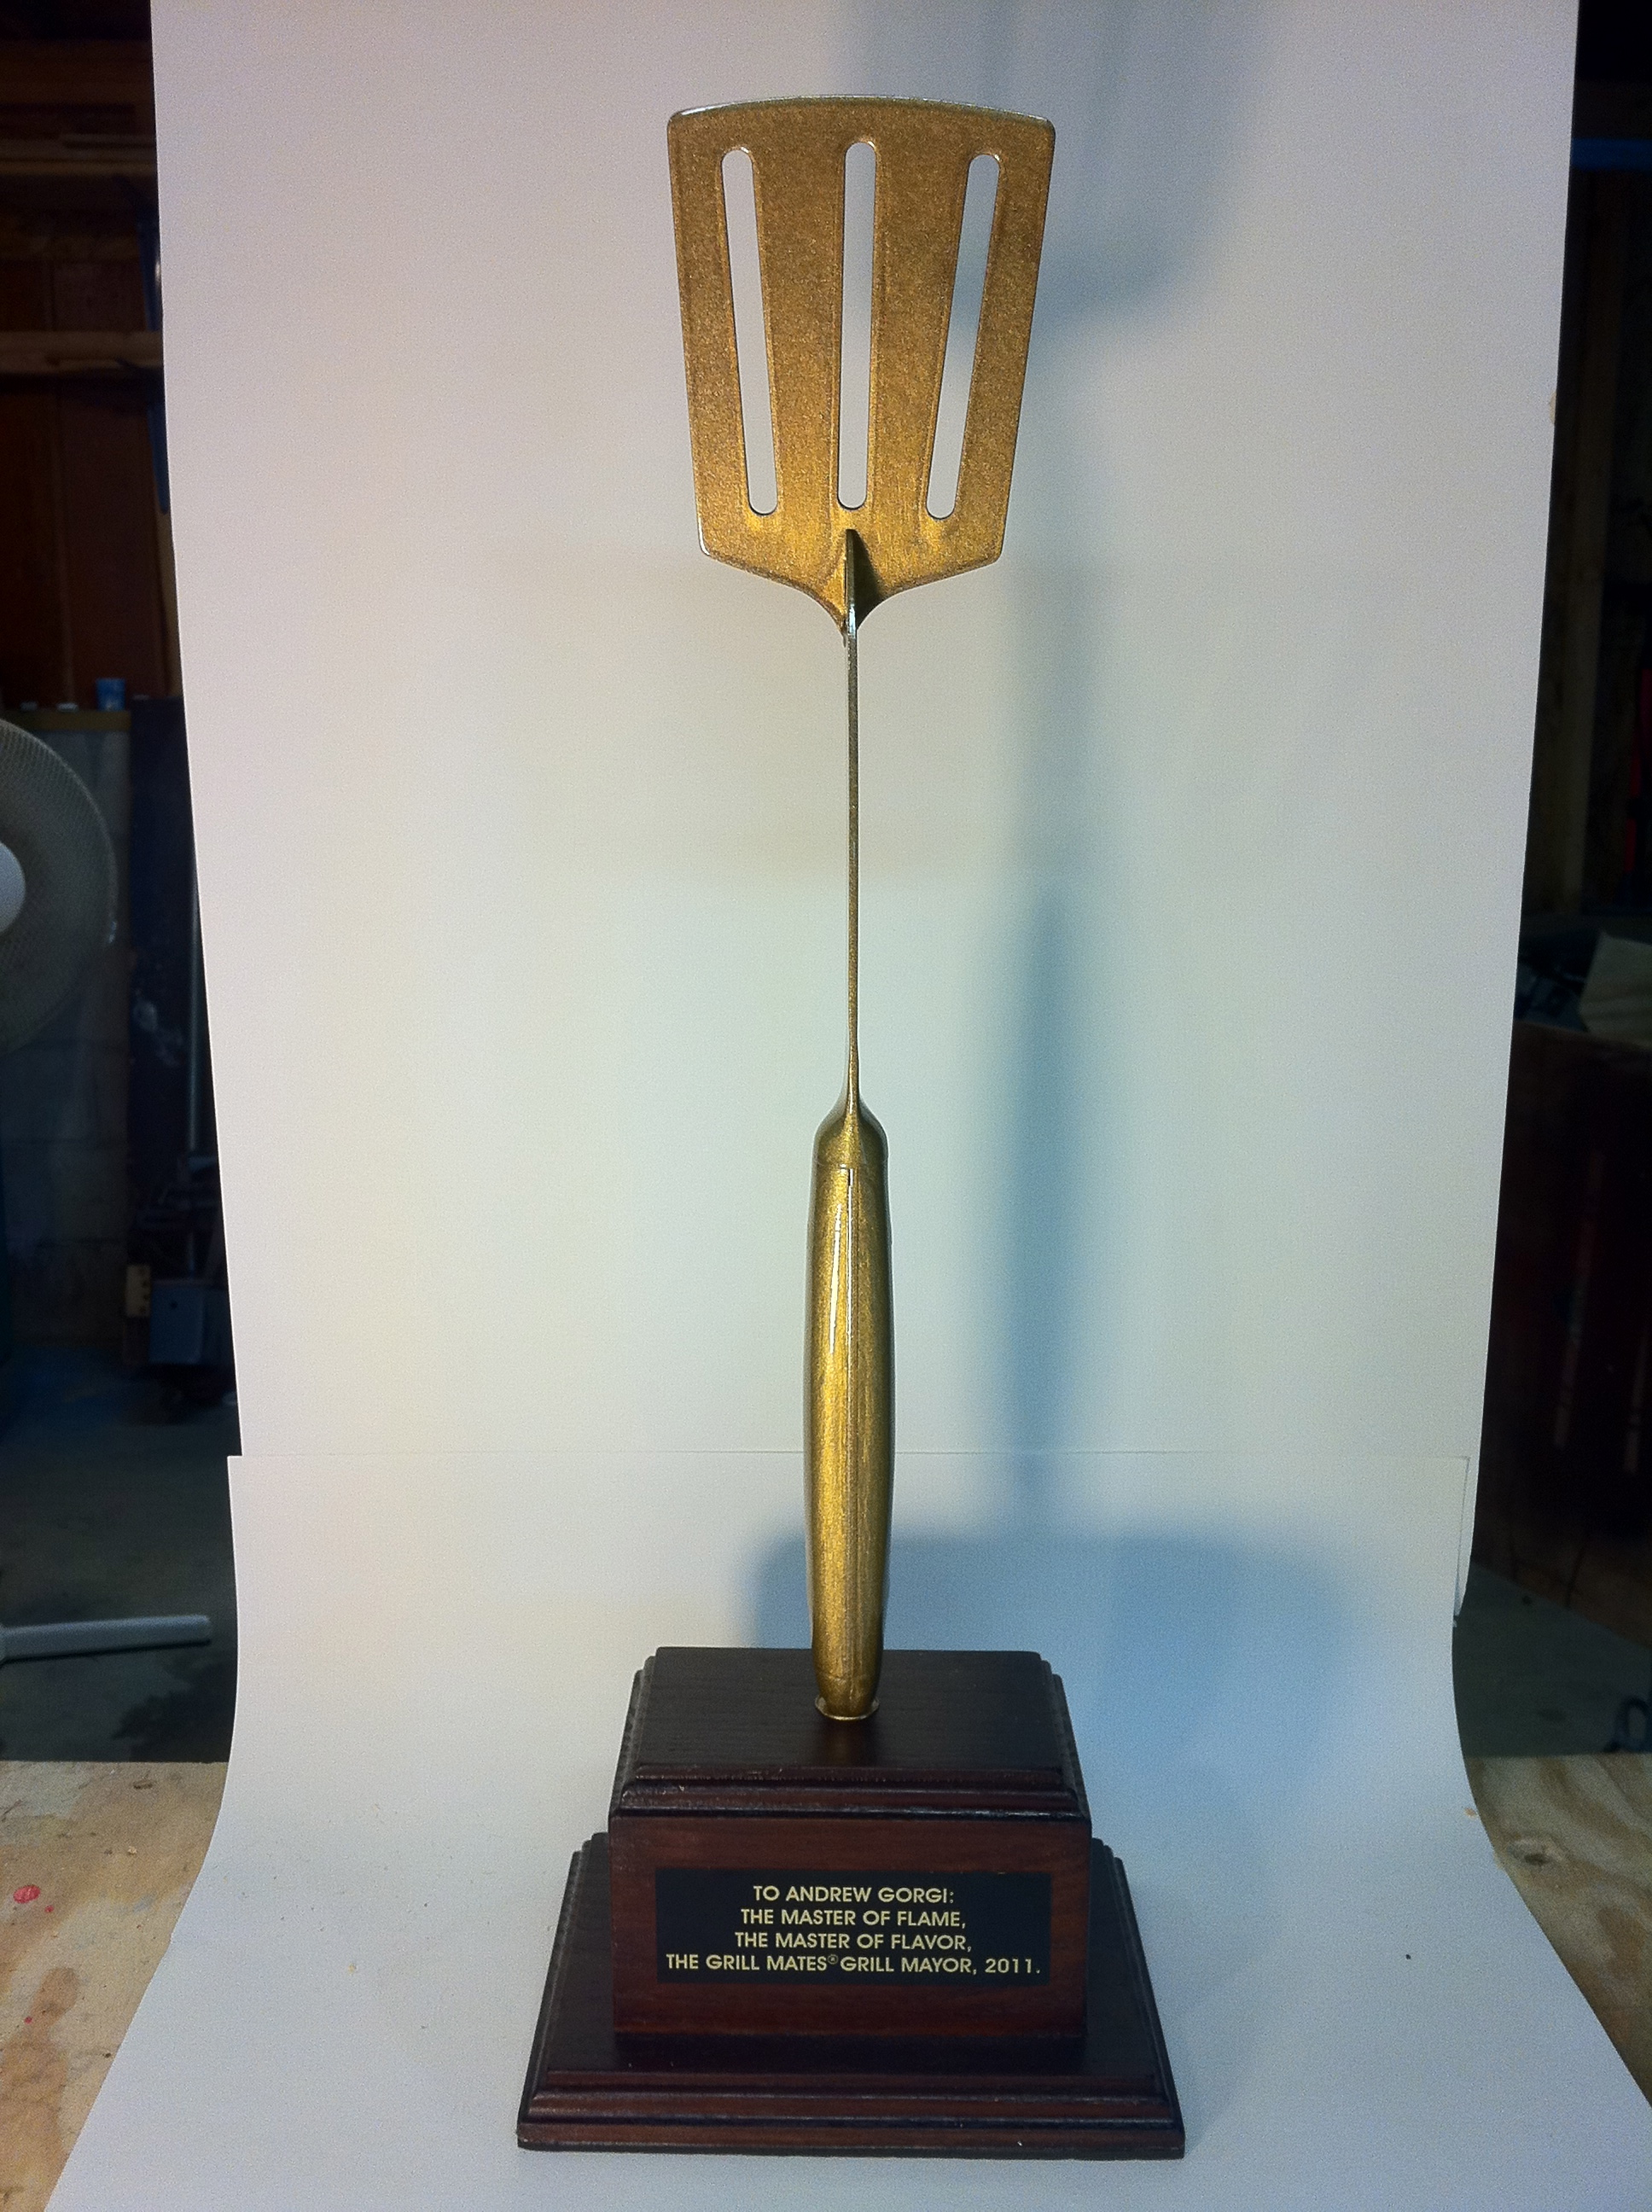 Golden Spatula Award for McCormicks Spices promotion.